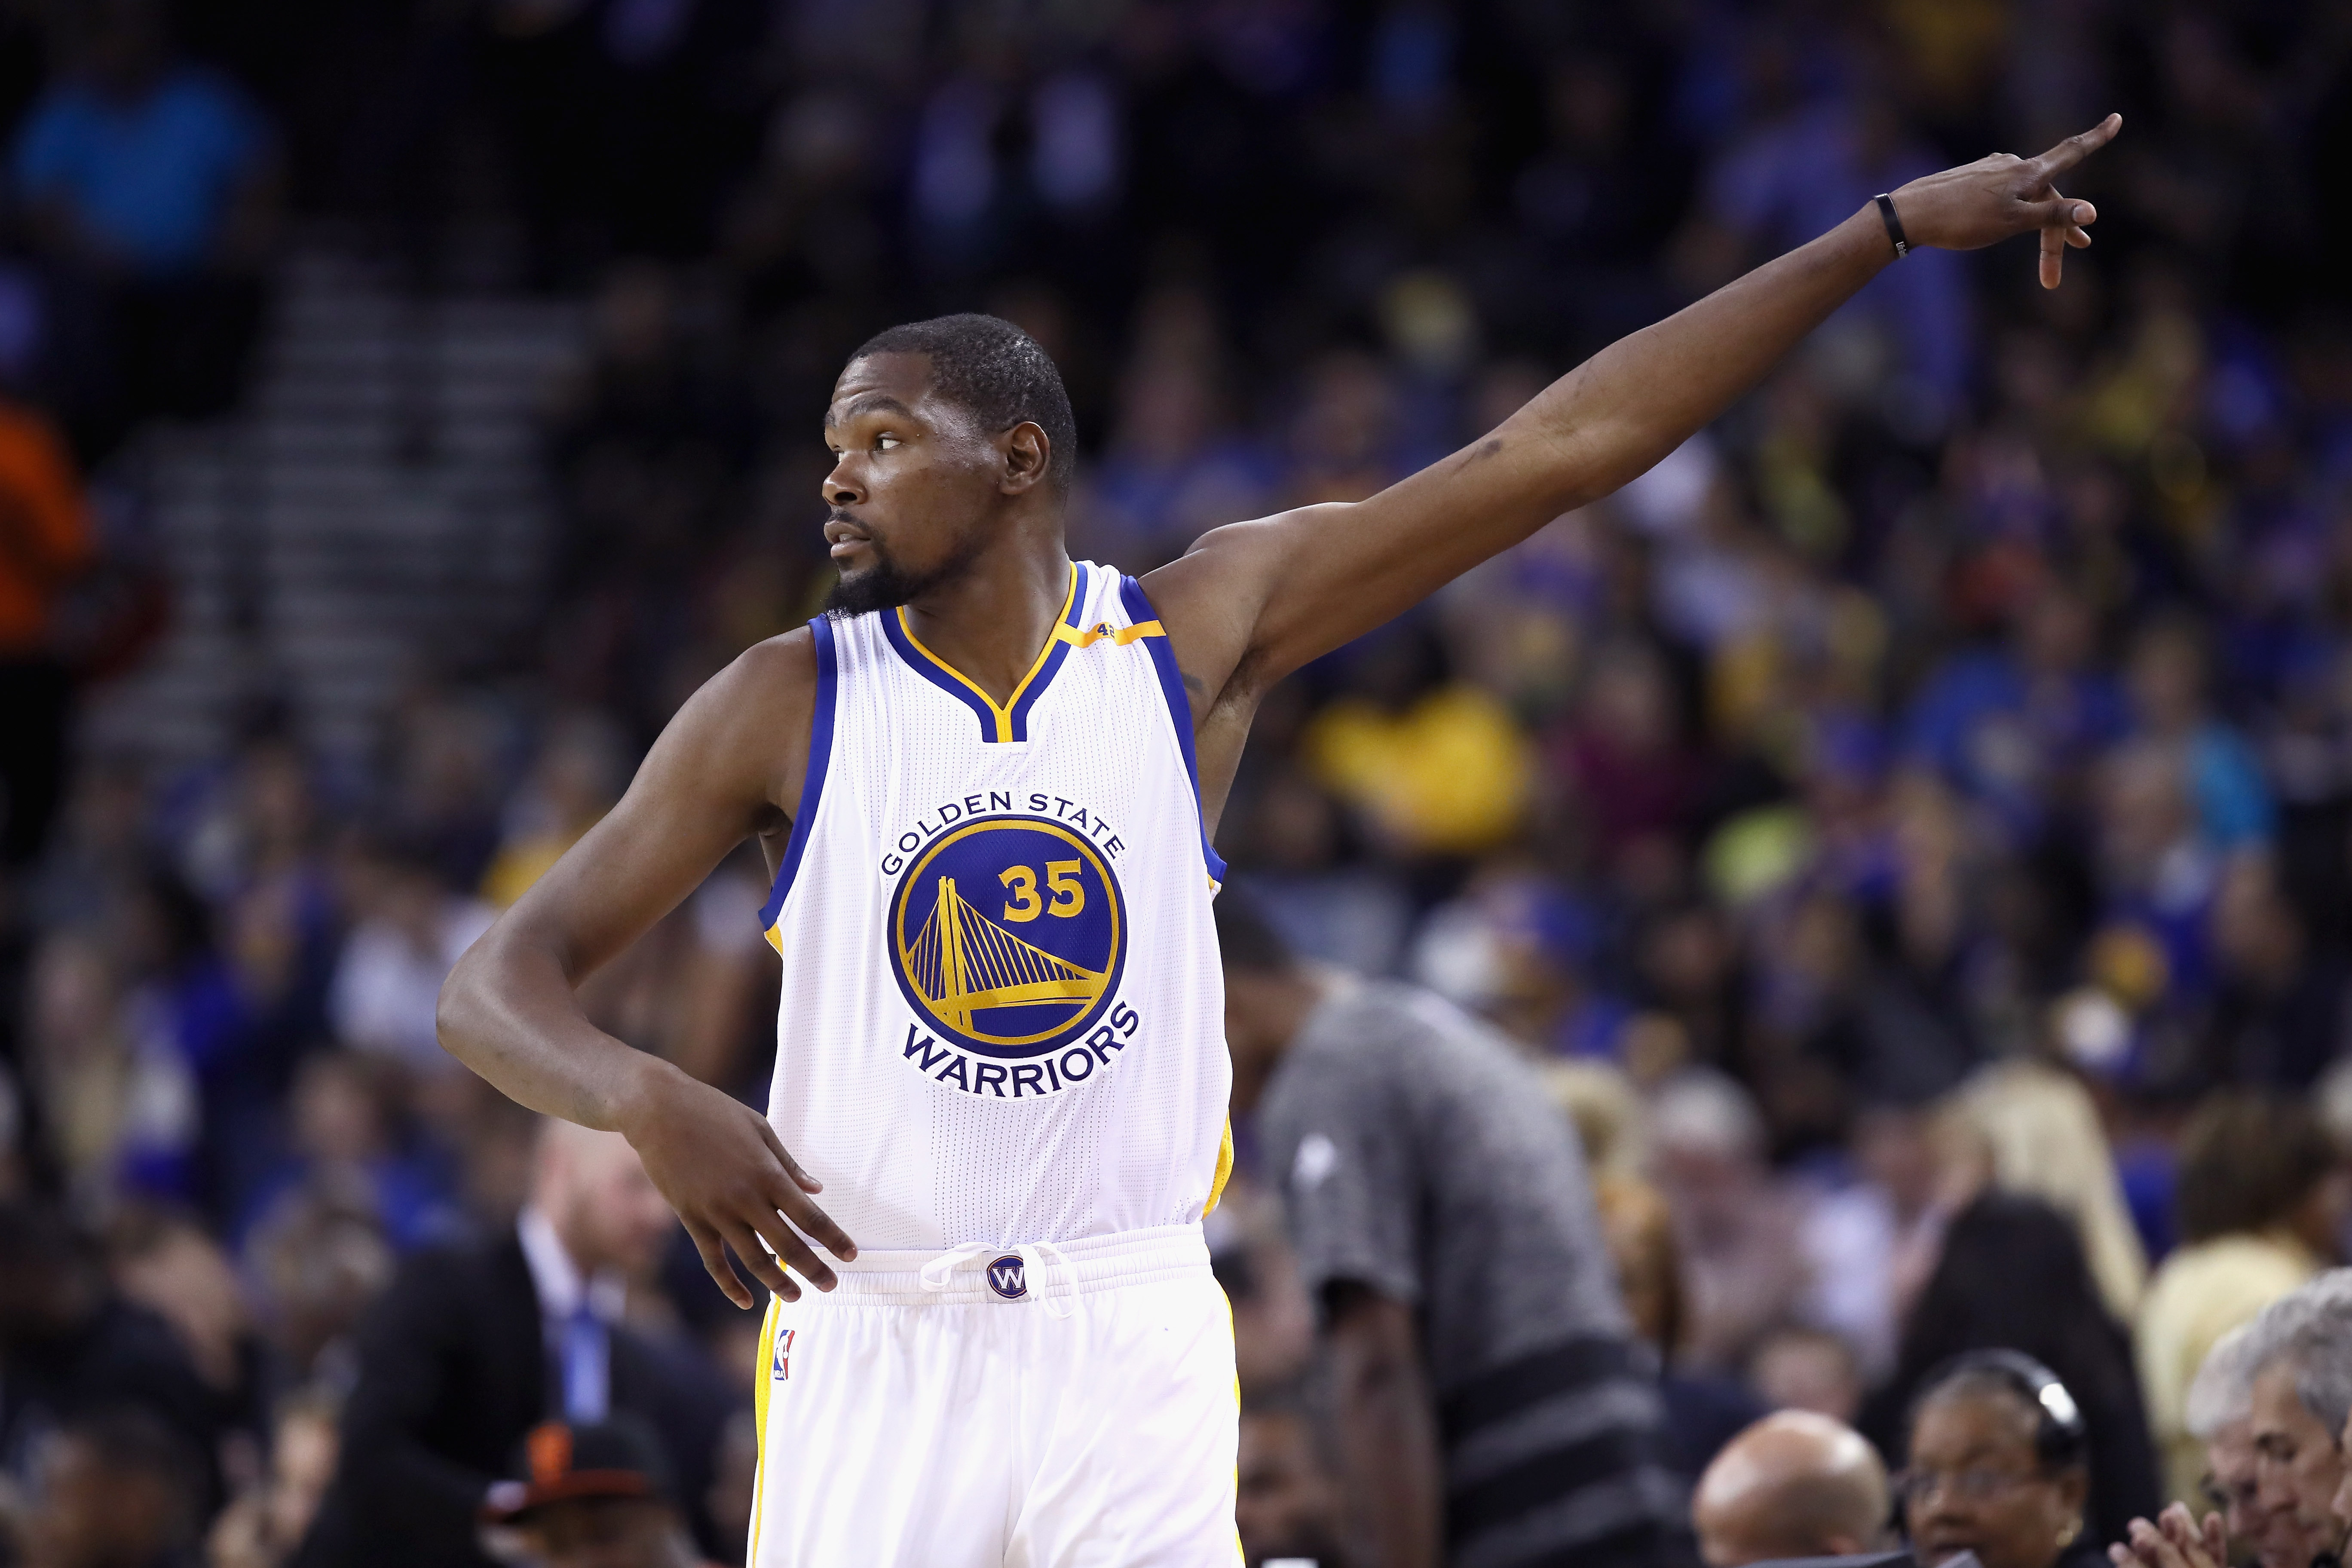 OAKLAND, CA - OCTOBER 04: Kevin Durant #35 of the Golden State Warriors points to the crowd during their game against the Los Angeles Clippers during their preseason game at ORACLE Arena on October 4, 2016 in Oakland, California. NOTE TO USER: User expressly acknowledges and agrees that, by downloading and or using this photograph, User is consenting to the terms and conditions of the Getty Images License Agreement. (Photo by Ezra Shaw/Getty Images)